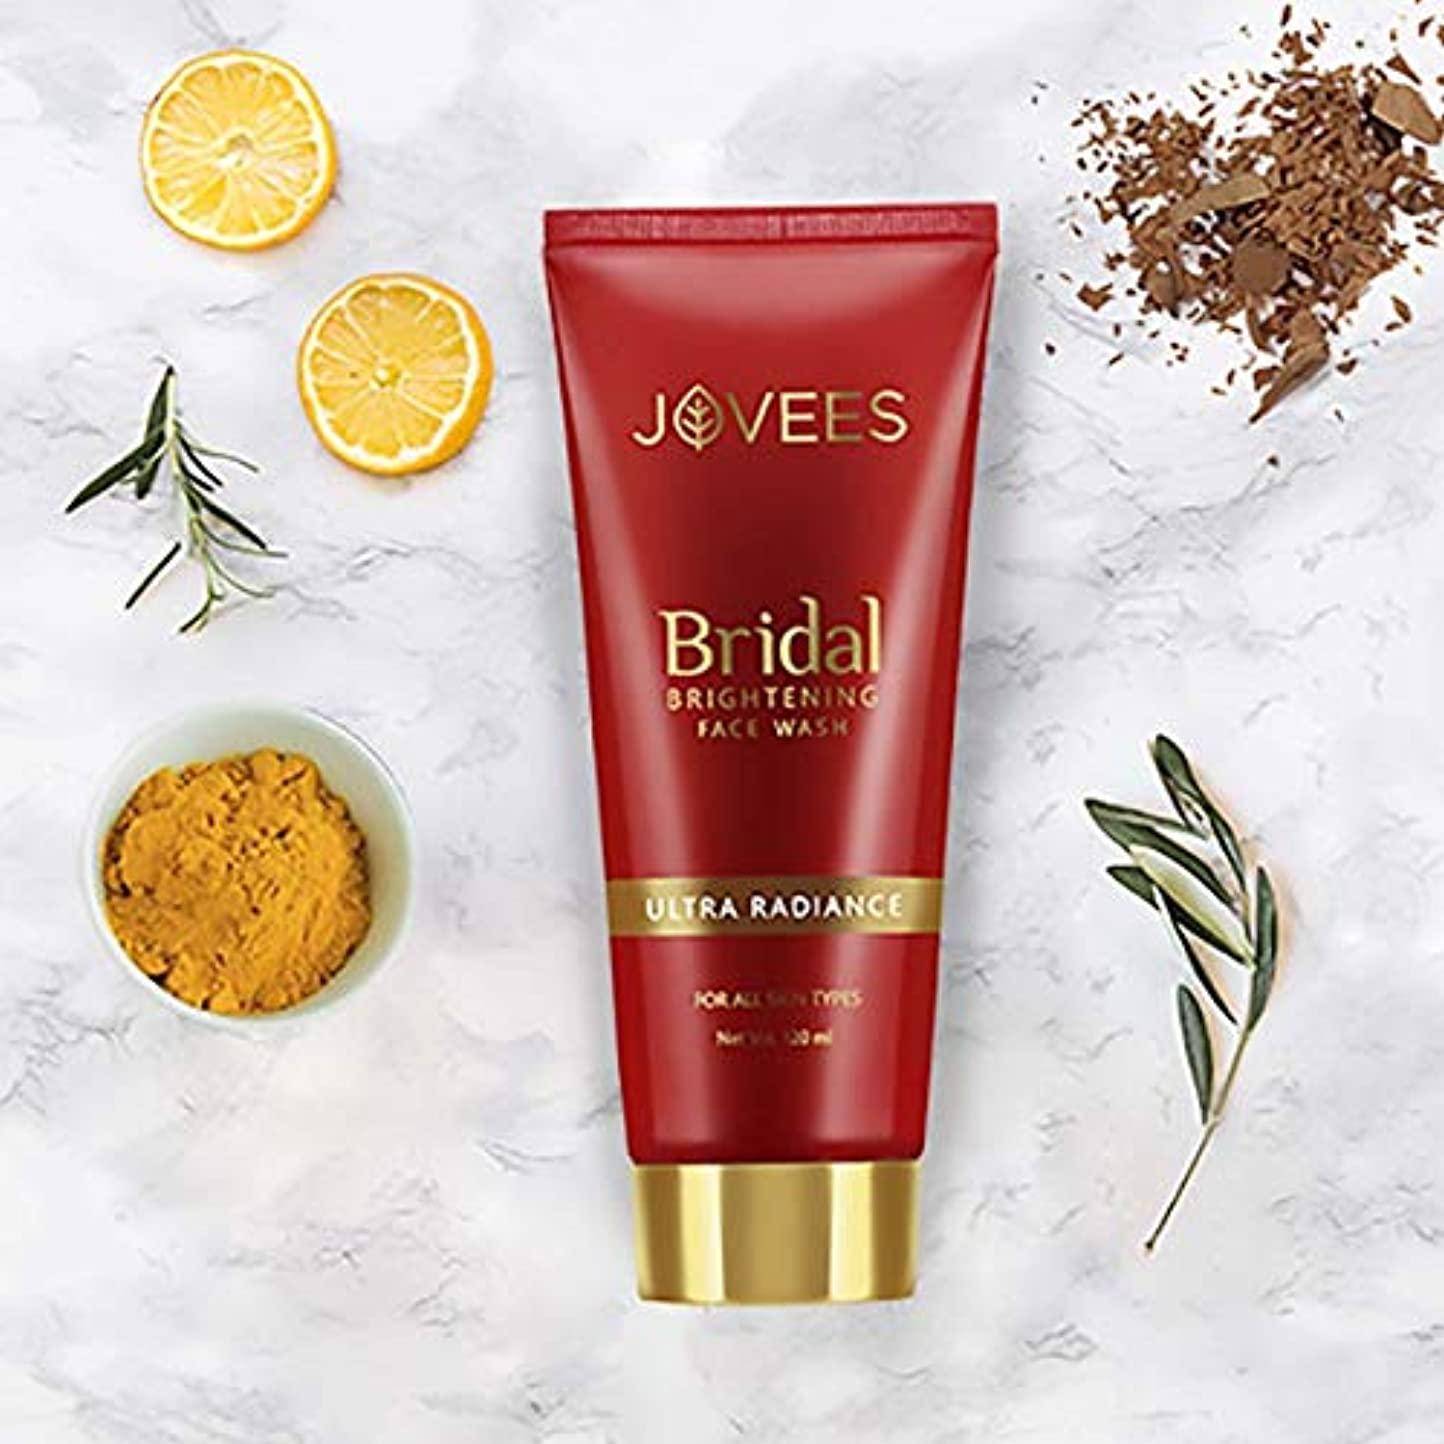 ラウズ失効差別するJovees Bridal Brightening Face Wash 120ml Ultra Radiance Even & brighter complex